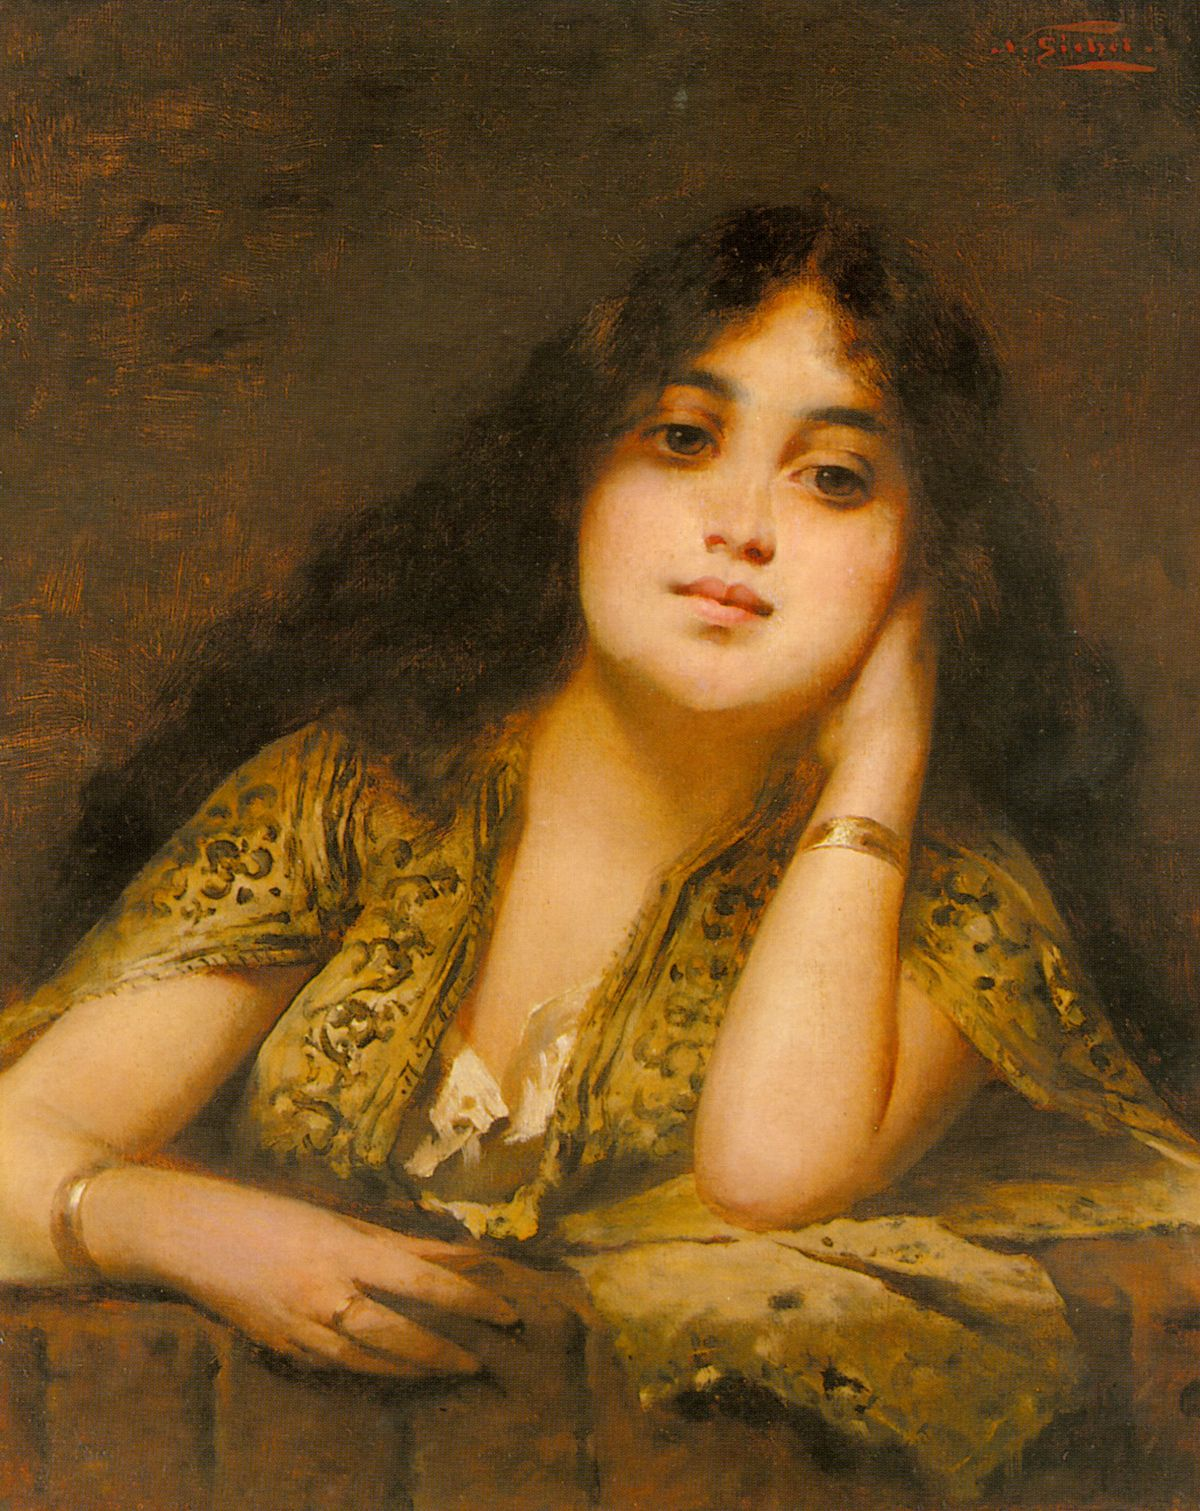 A Young Oriental Beauty by Nathaniel Sichel